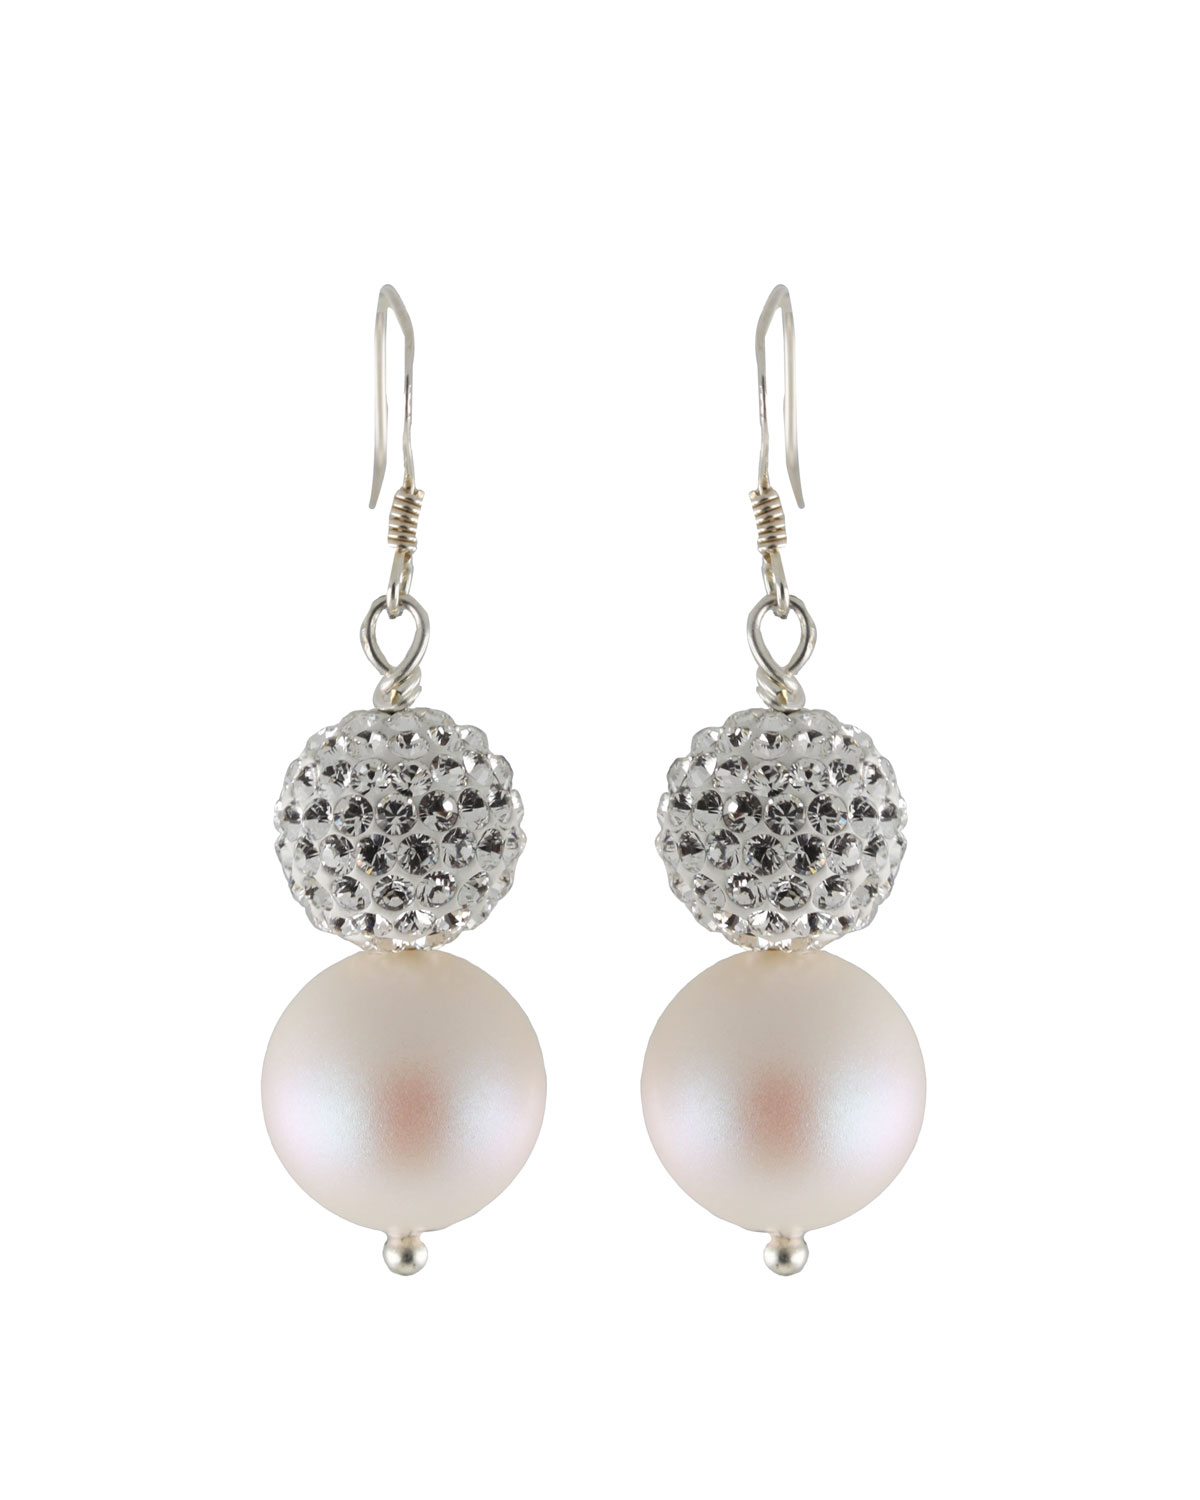 Chambord brides earrings